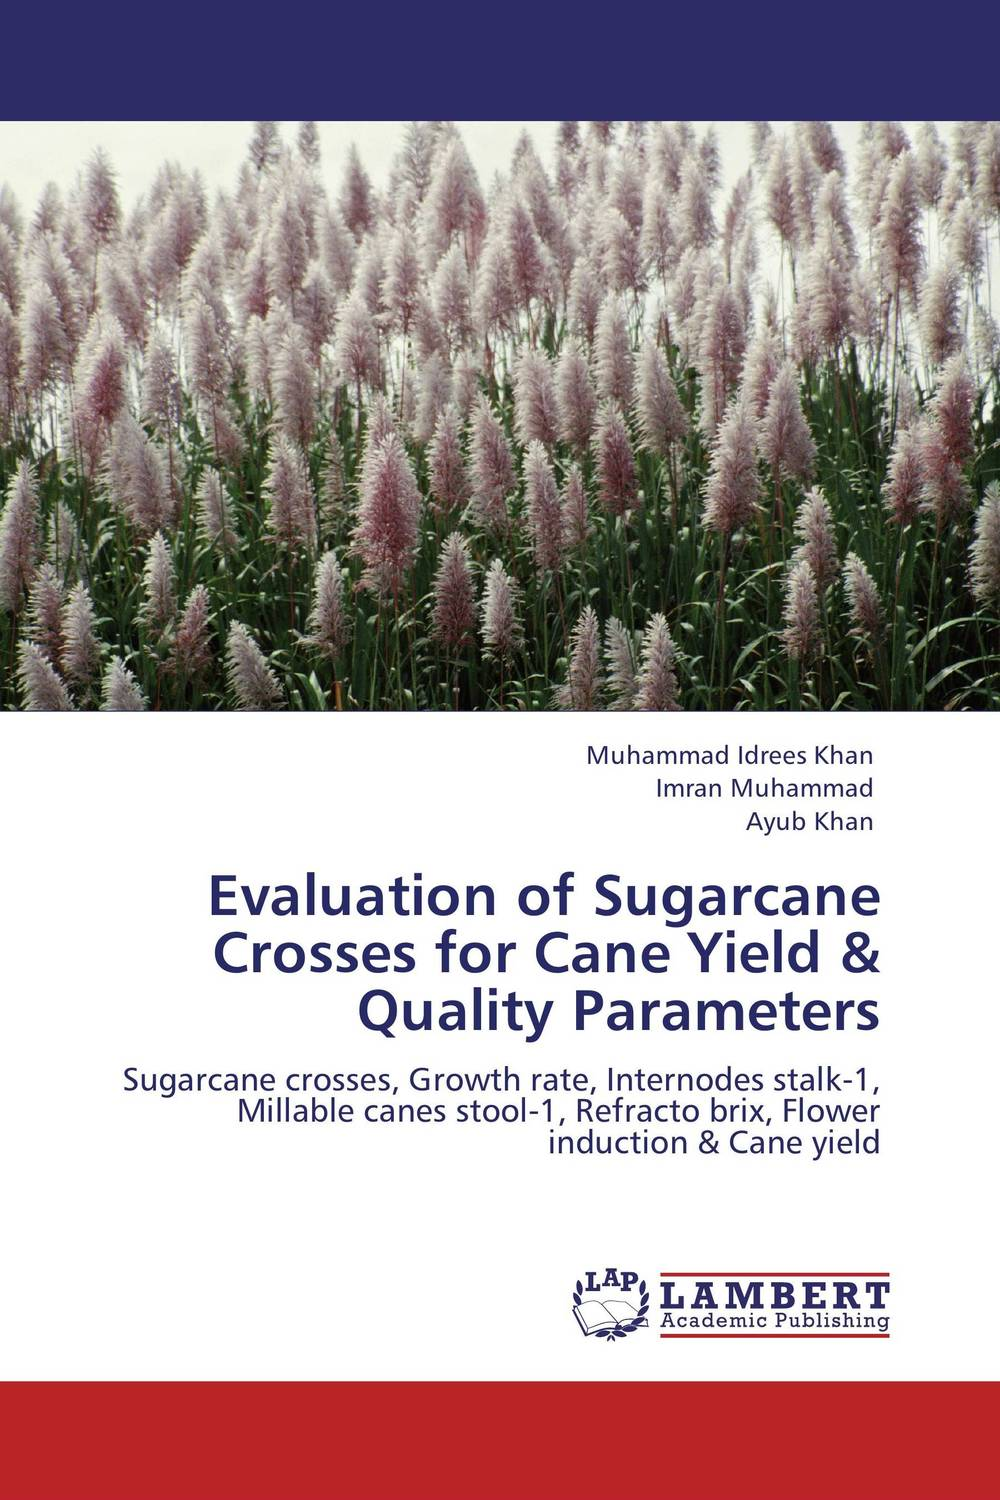 цена на Evaluation of Sugarcane Crosses for Cane Yield & Quality Parameters